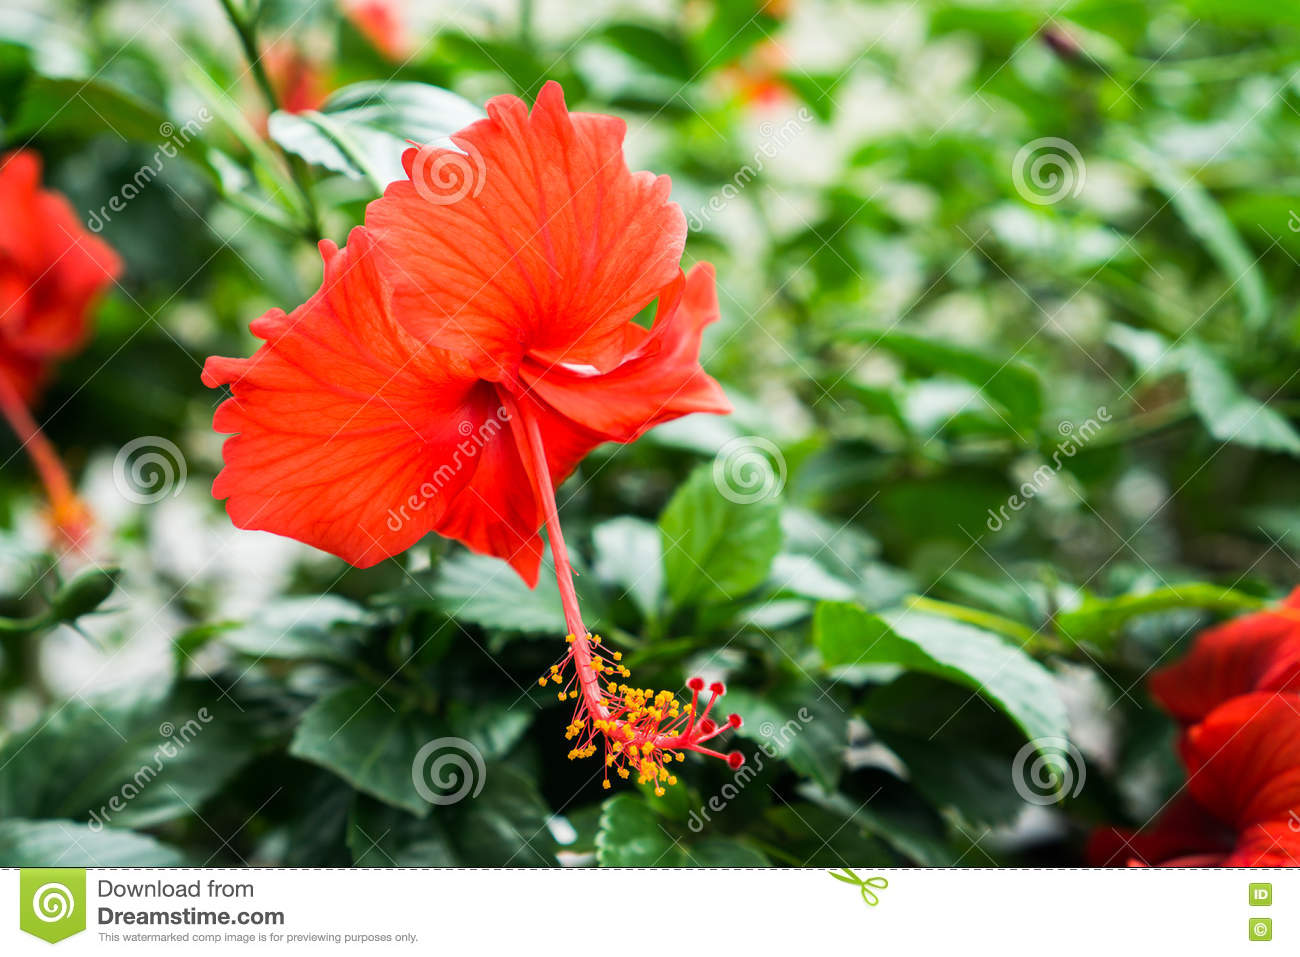 Red chinese rose shoe flower or a flower of red hibiscus with green red chinese rose shoe flower or a flower of red hibiscus with green leaves scientific name as hibiscus rosa sinensis l izmirmasajfo